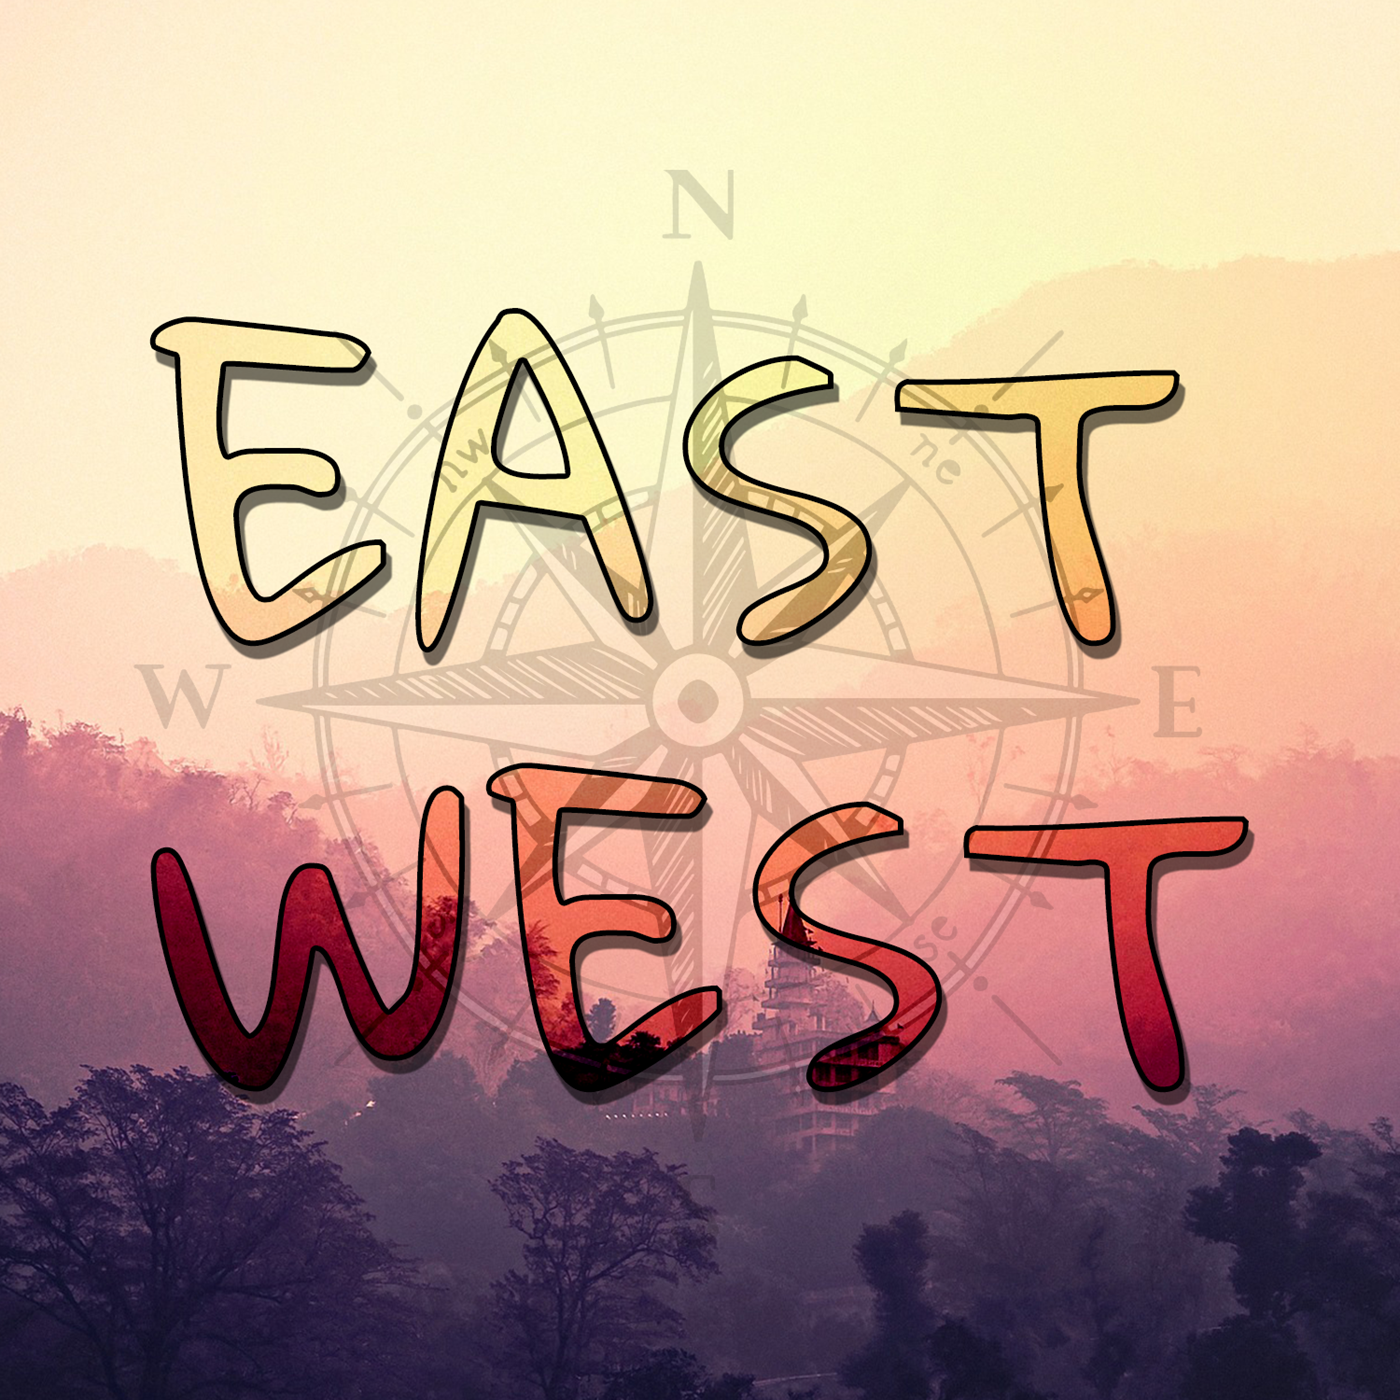 East West on Youth Zone - 17-09-2019